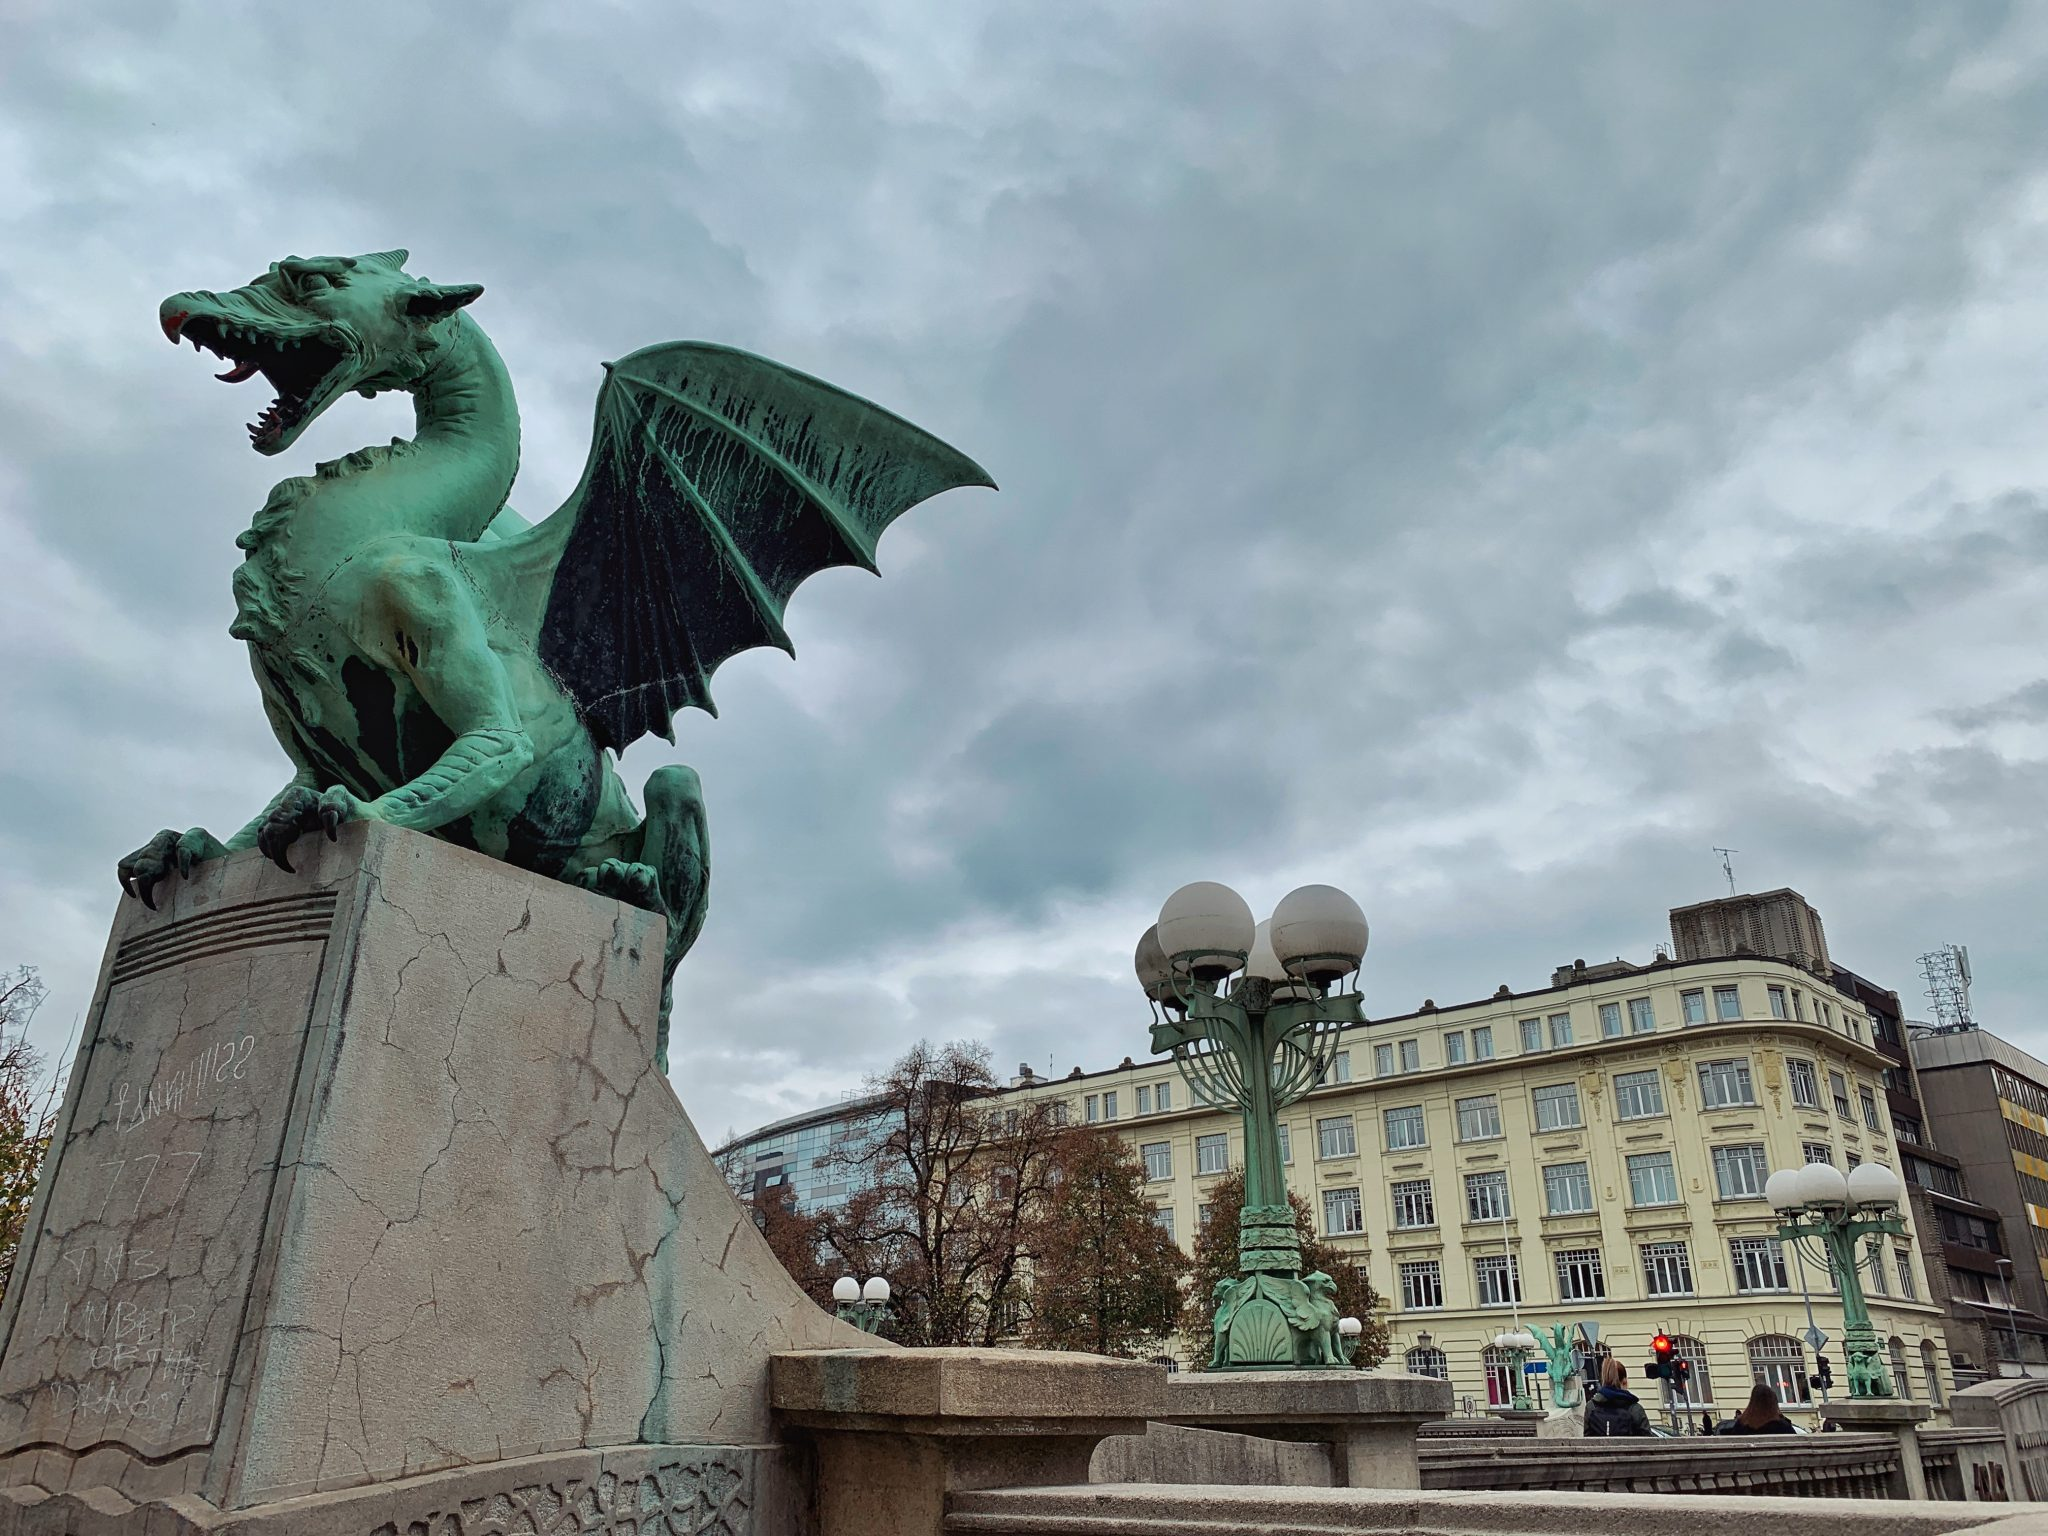 Dragon statue in Ljubljana